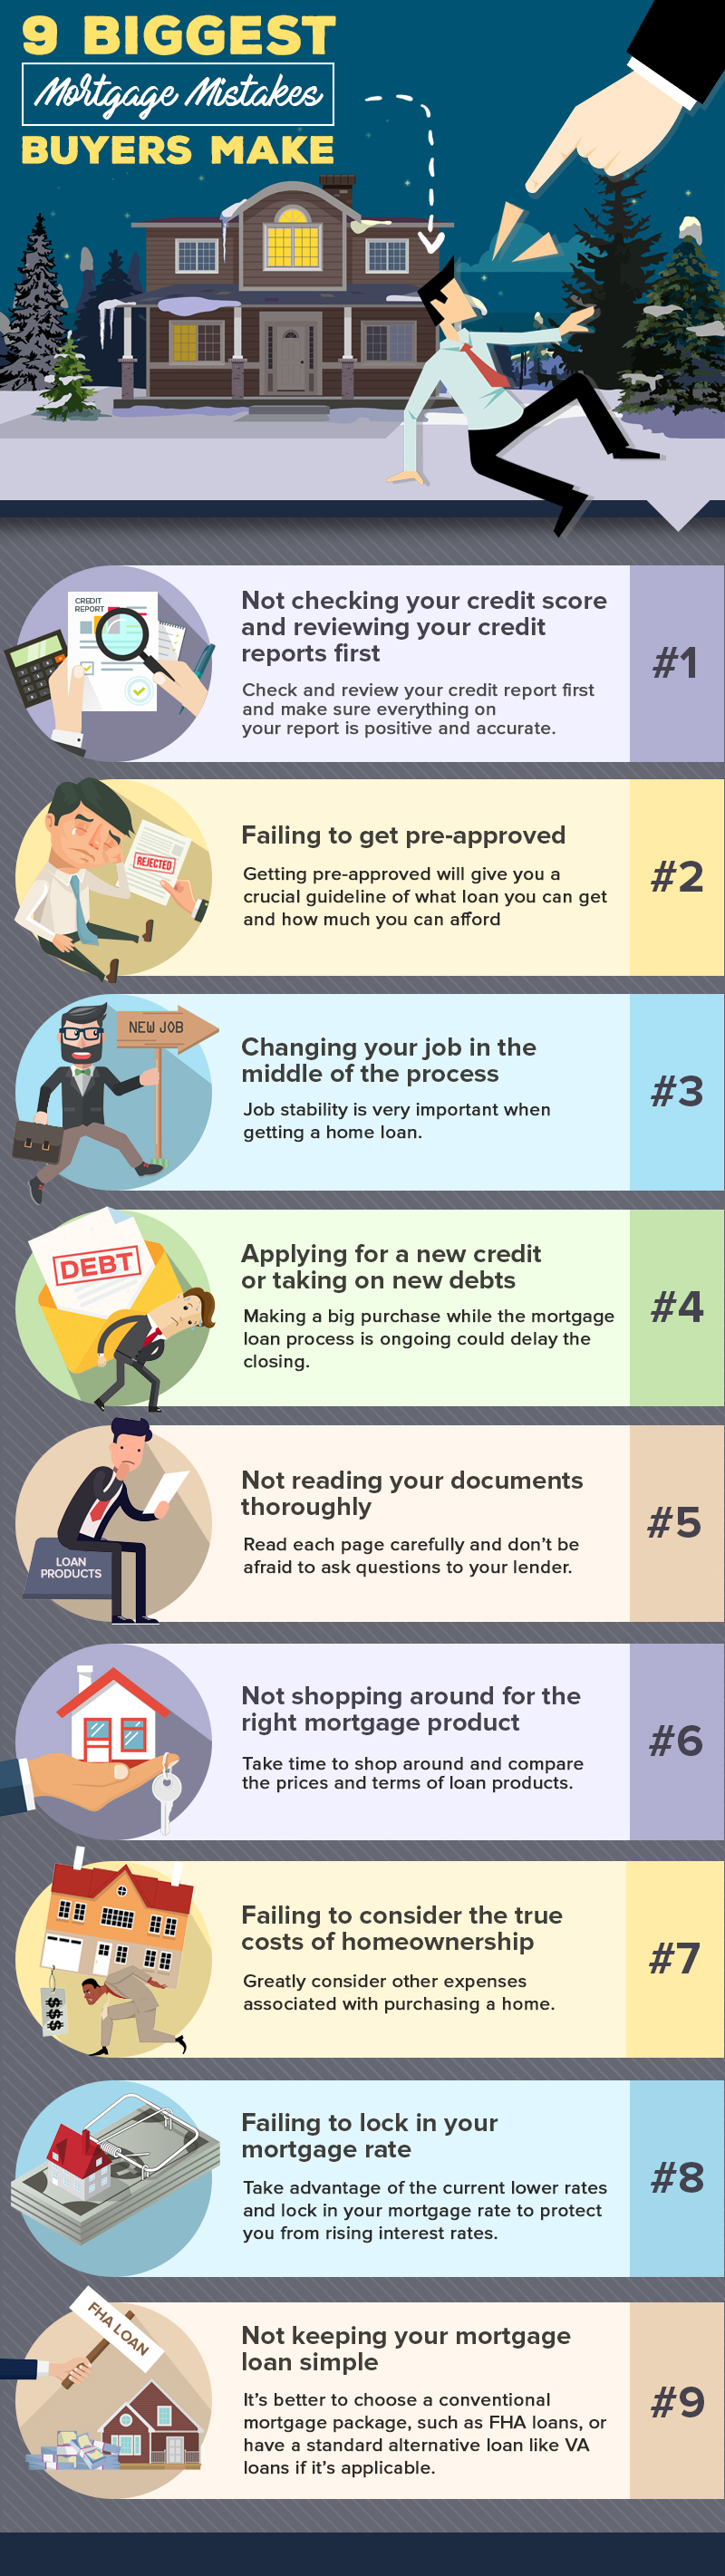 9 Biggest Mortgage Mistakes Buyers Make